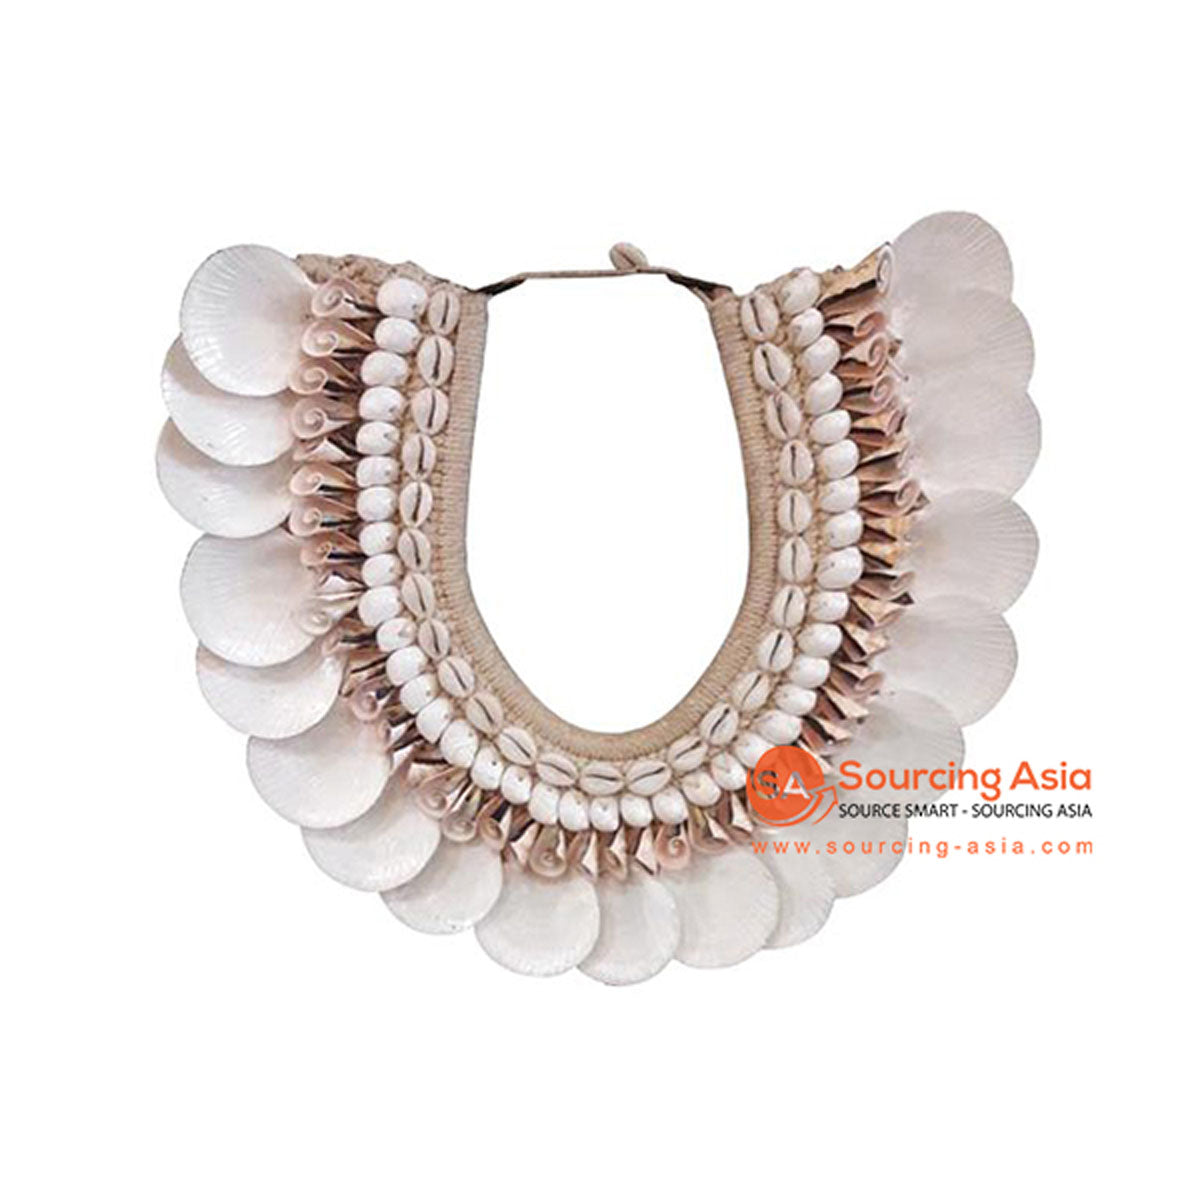 SHL068-9 WHITE AND CREAM SHELL NECKLACE HANGING WALL DECORATION